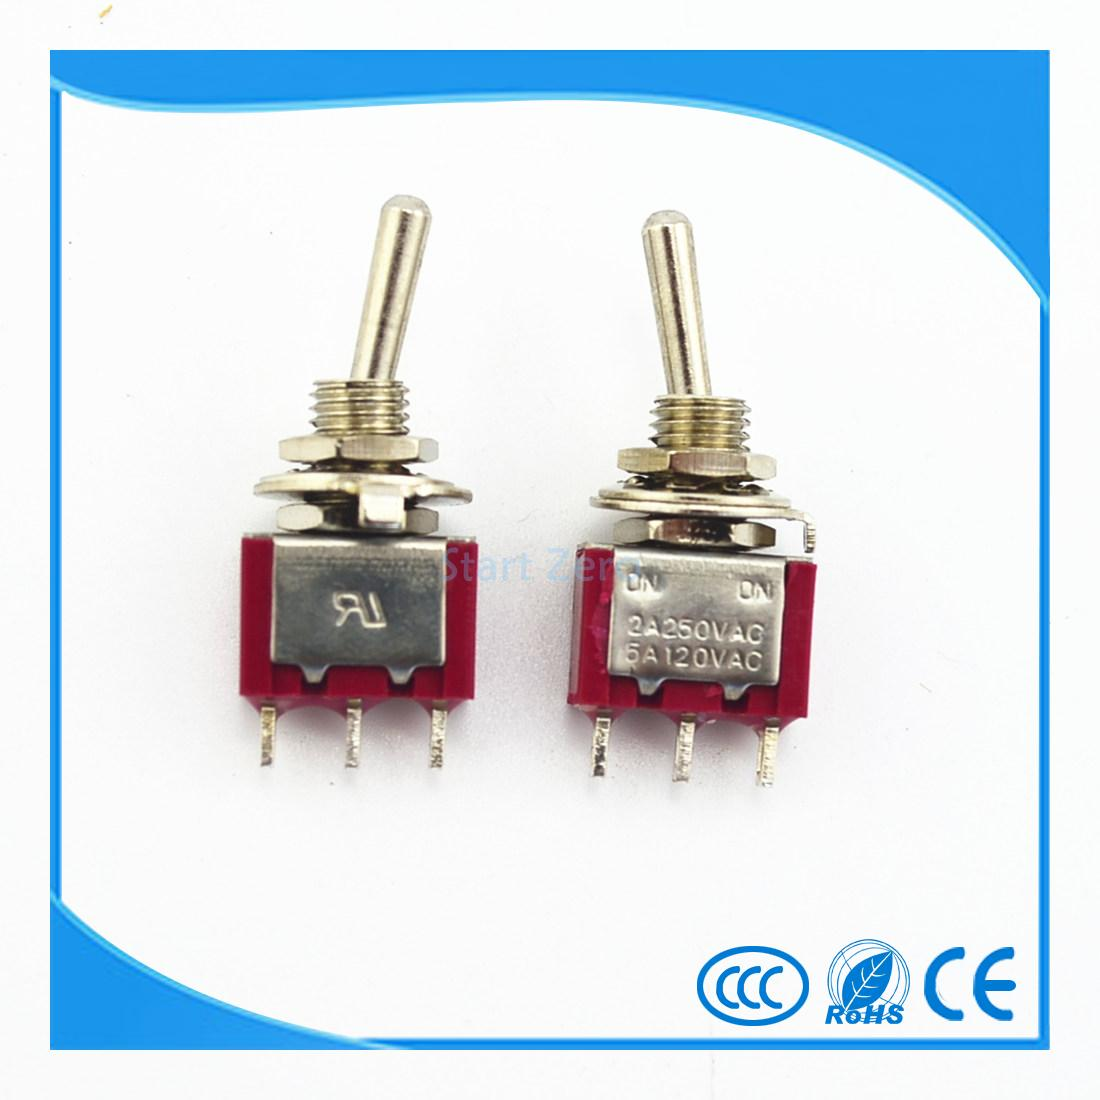 10Pcs 3 Pin 2 Position ON-ON Red Latching Toggle Switch AC 125V/6A